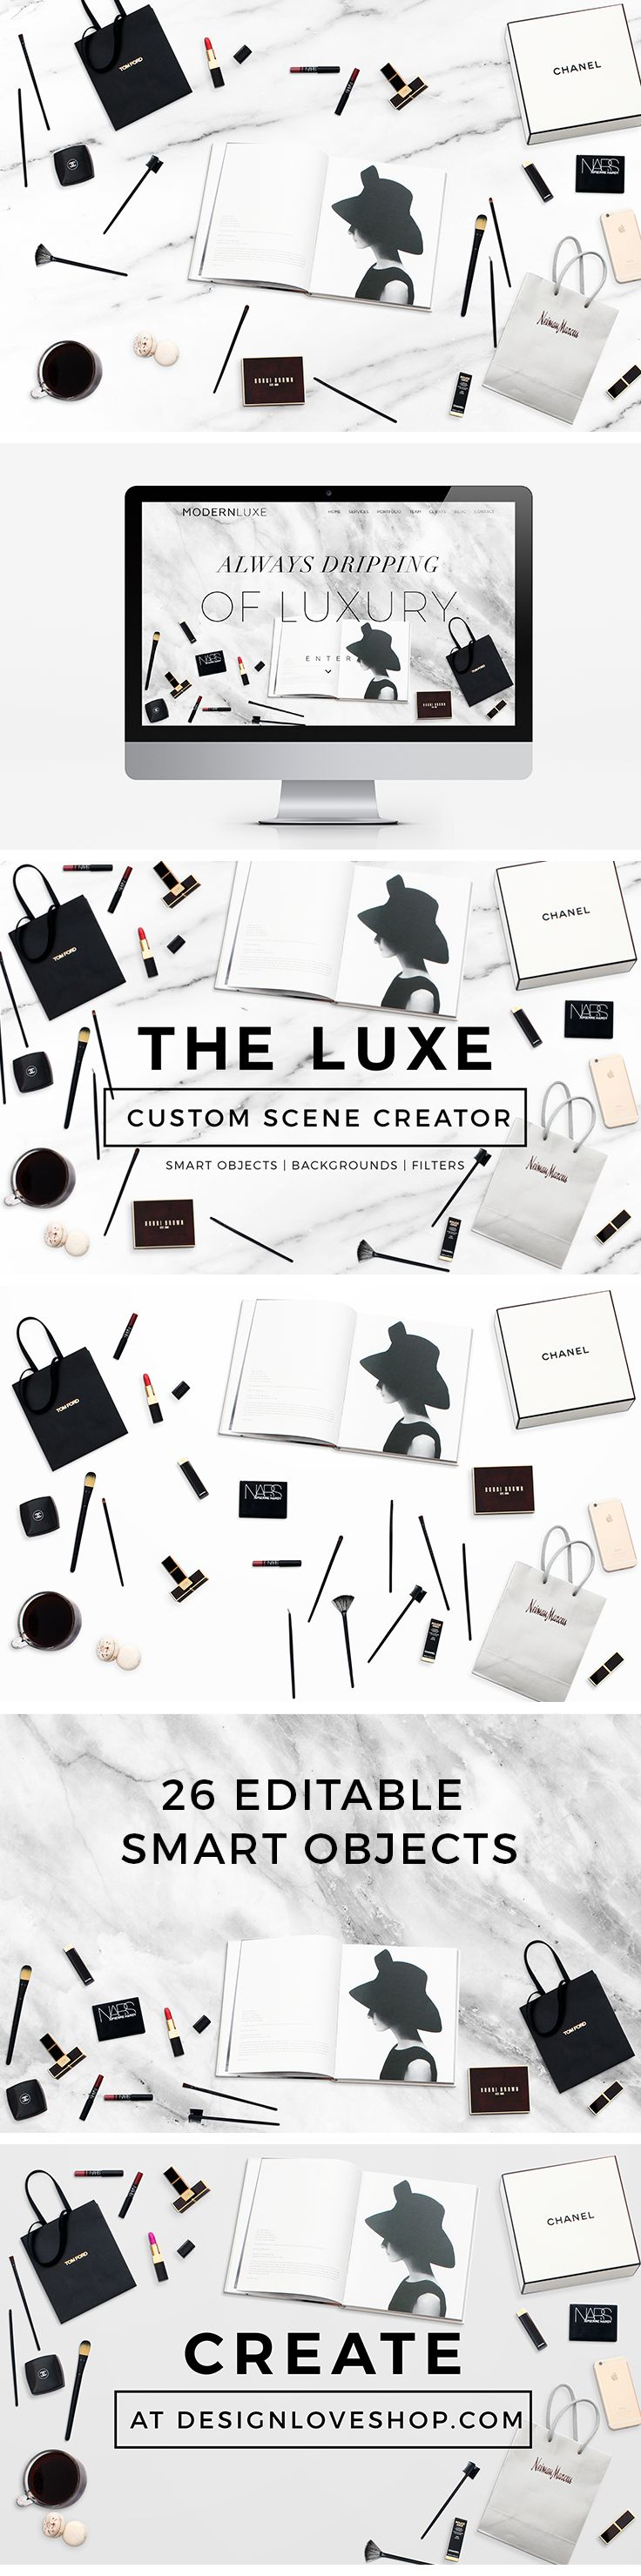 THE LUXE CUSTOM SCENCE CREATOR. Customize & make your website &/or blog beautiful.